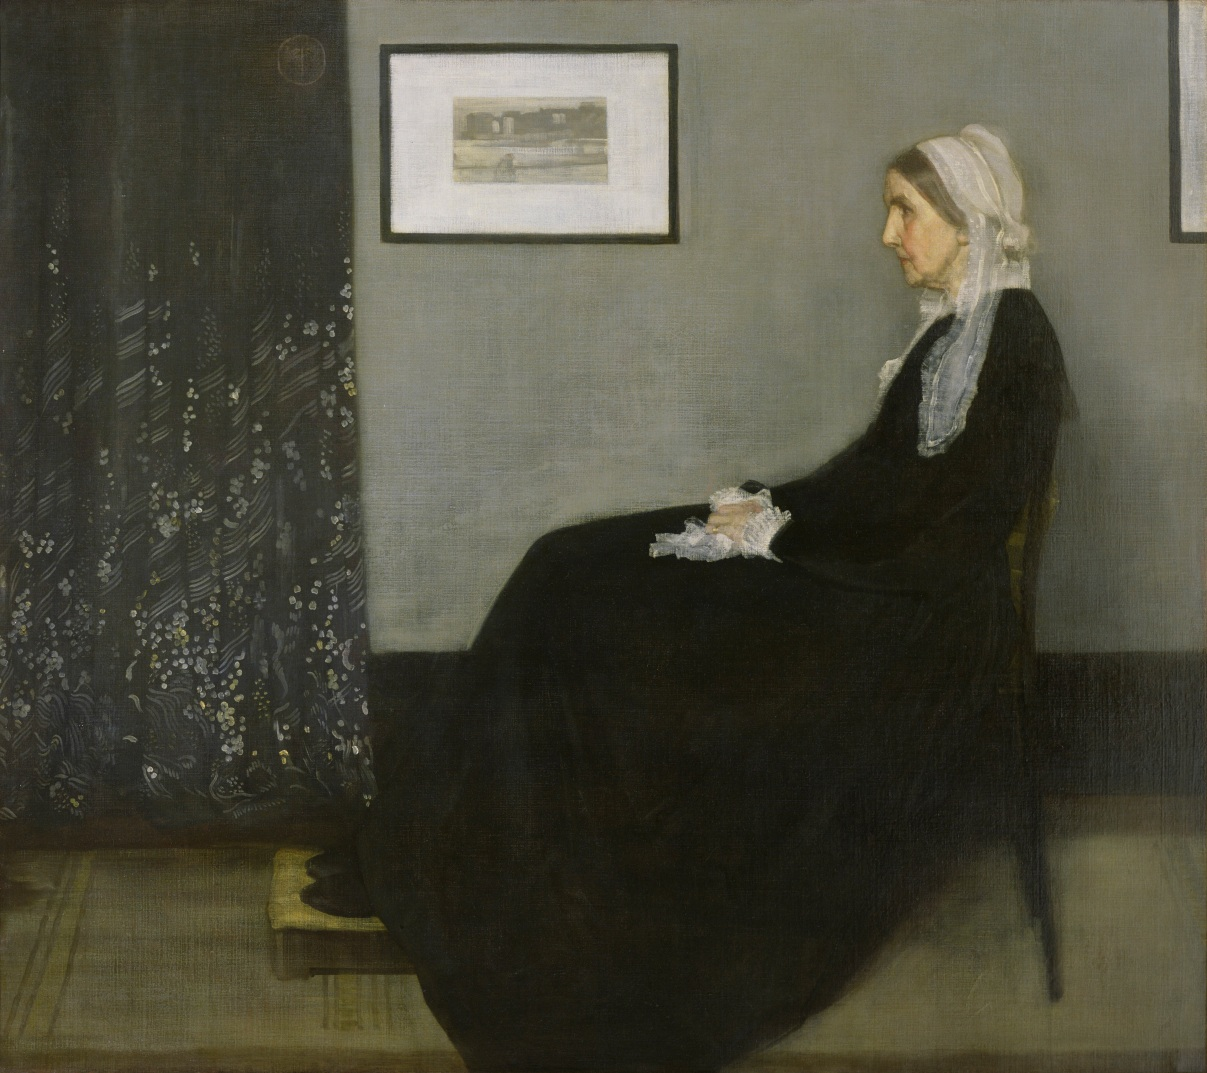 James McNeill Whistler's most familiar work, Whistler's Mother, 1871.